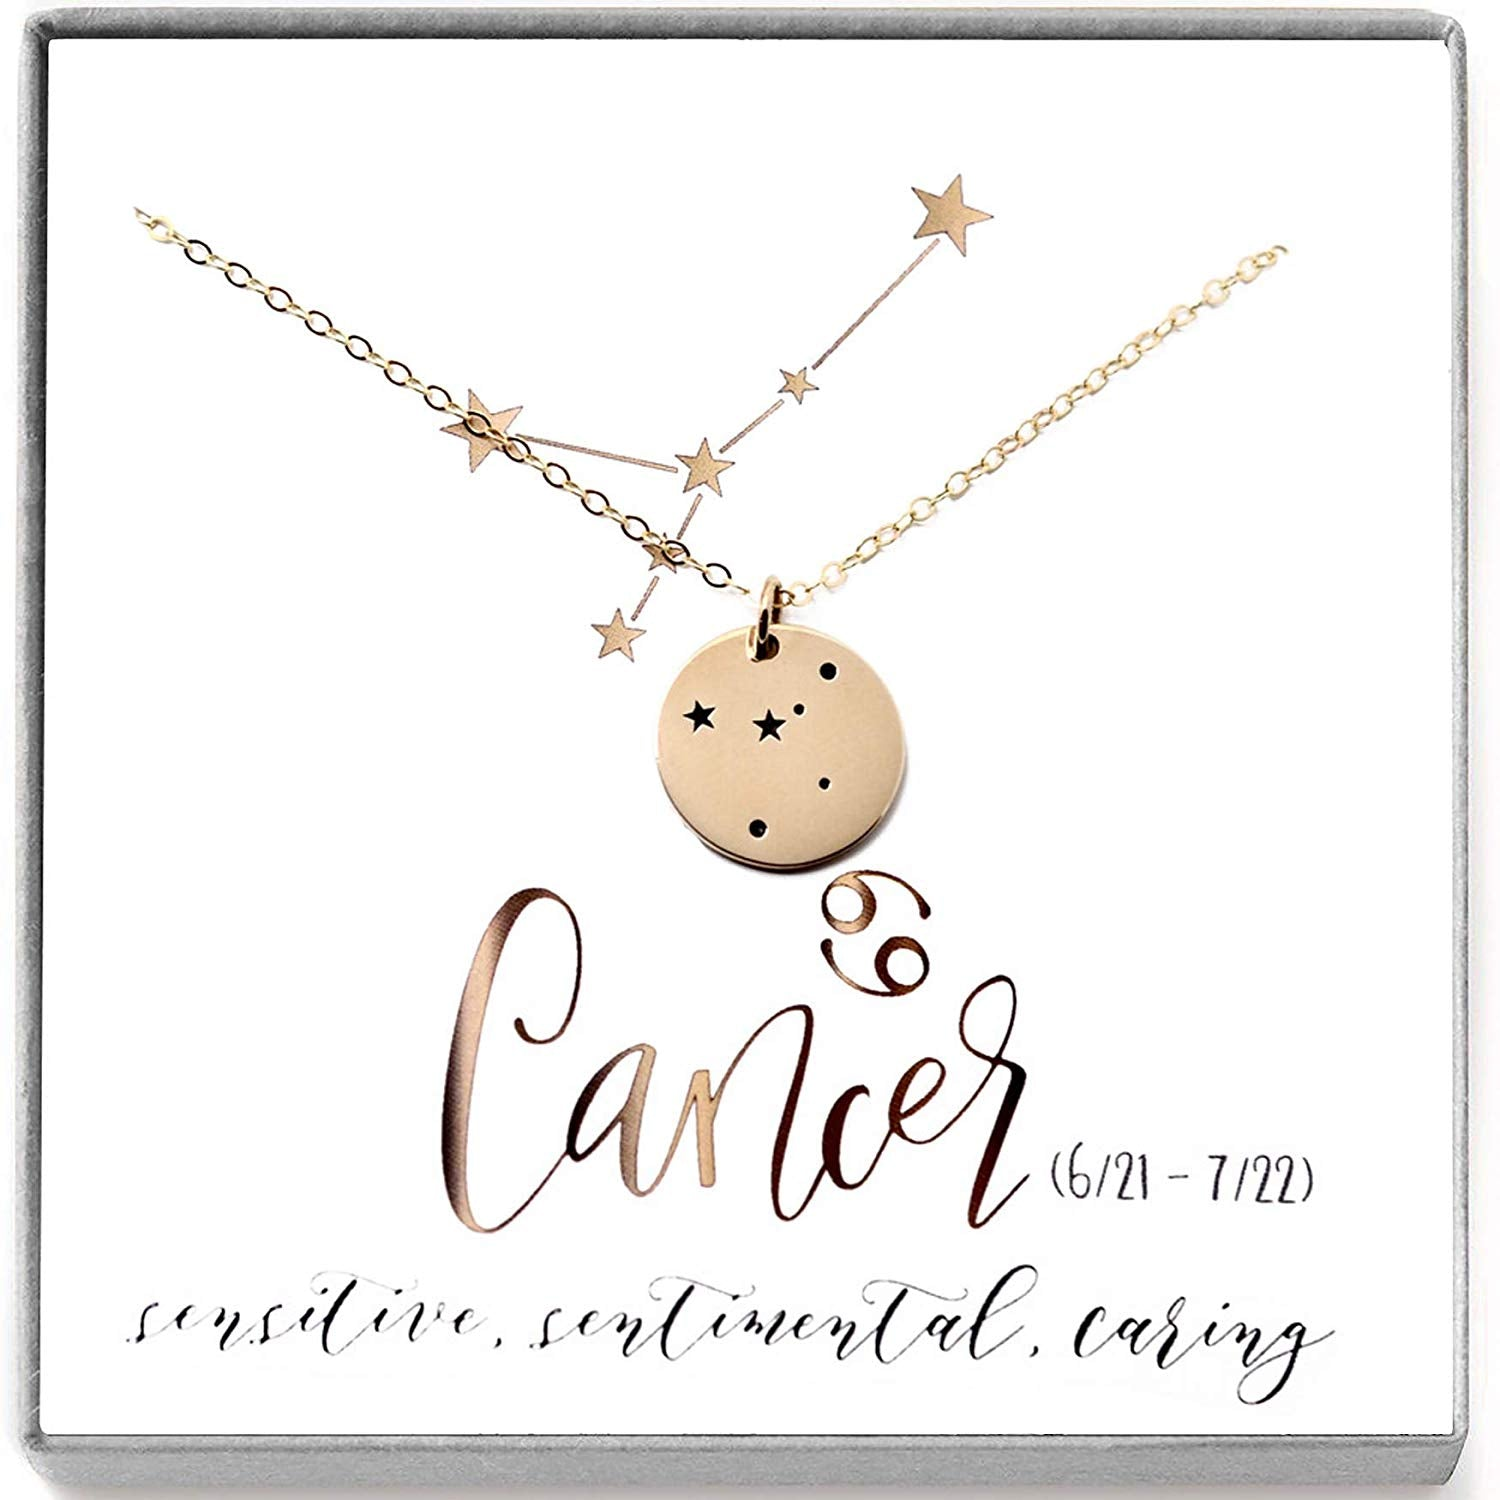 Cancer Zodiac Sign 14K Gold Filled Constellation Necklace - Love It Personalized